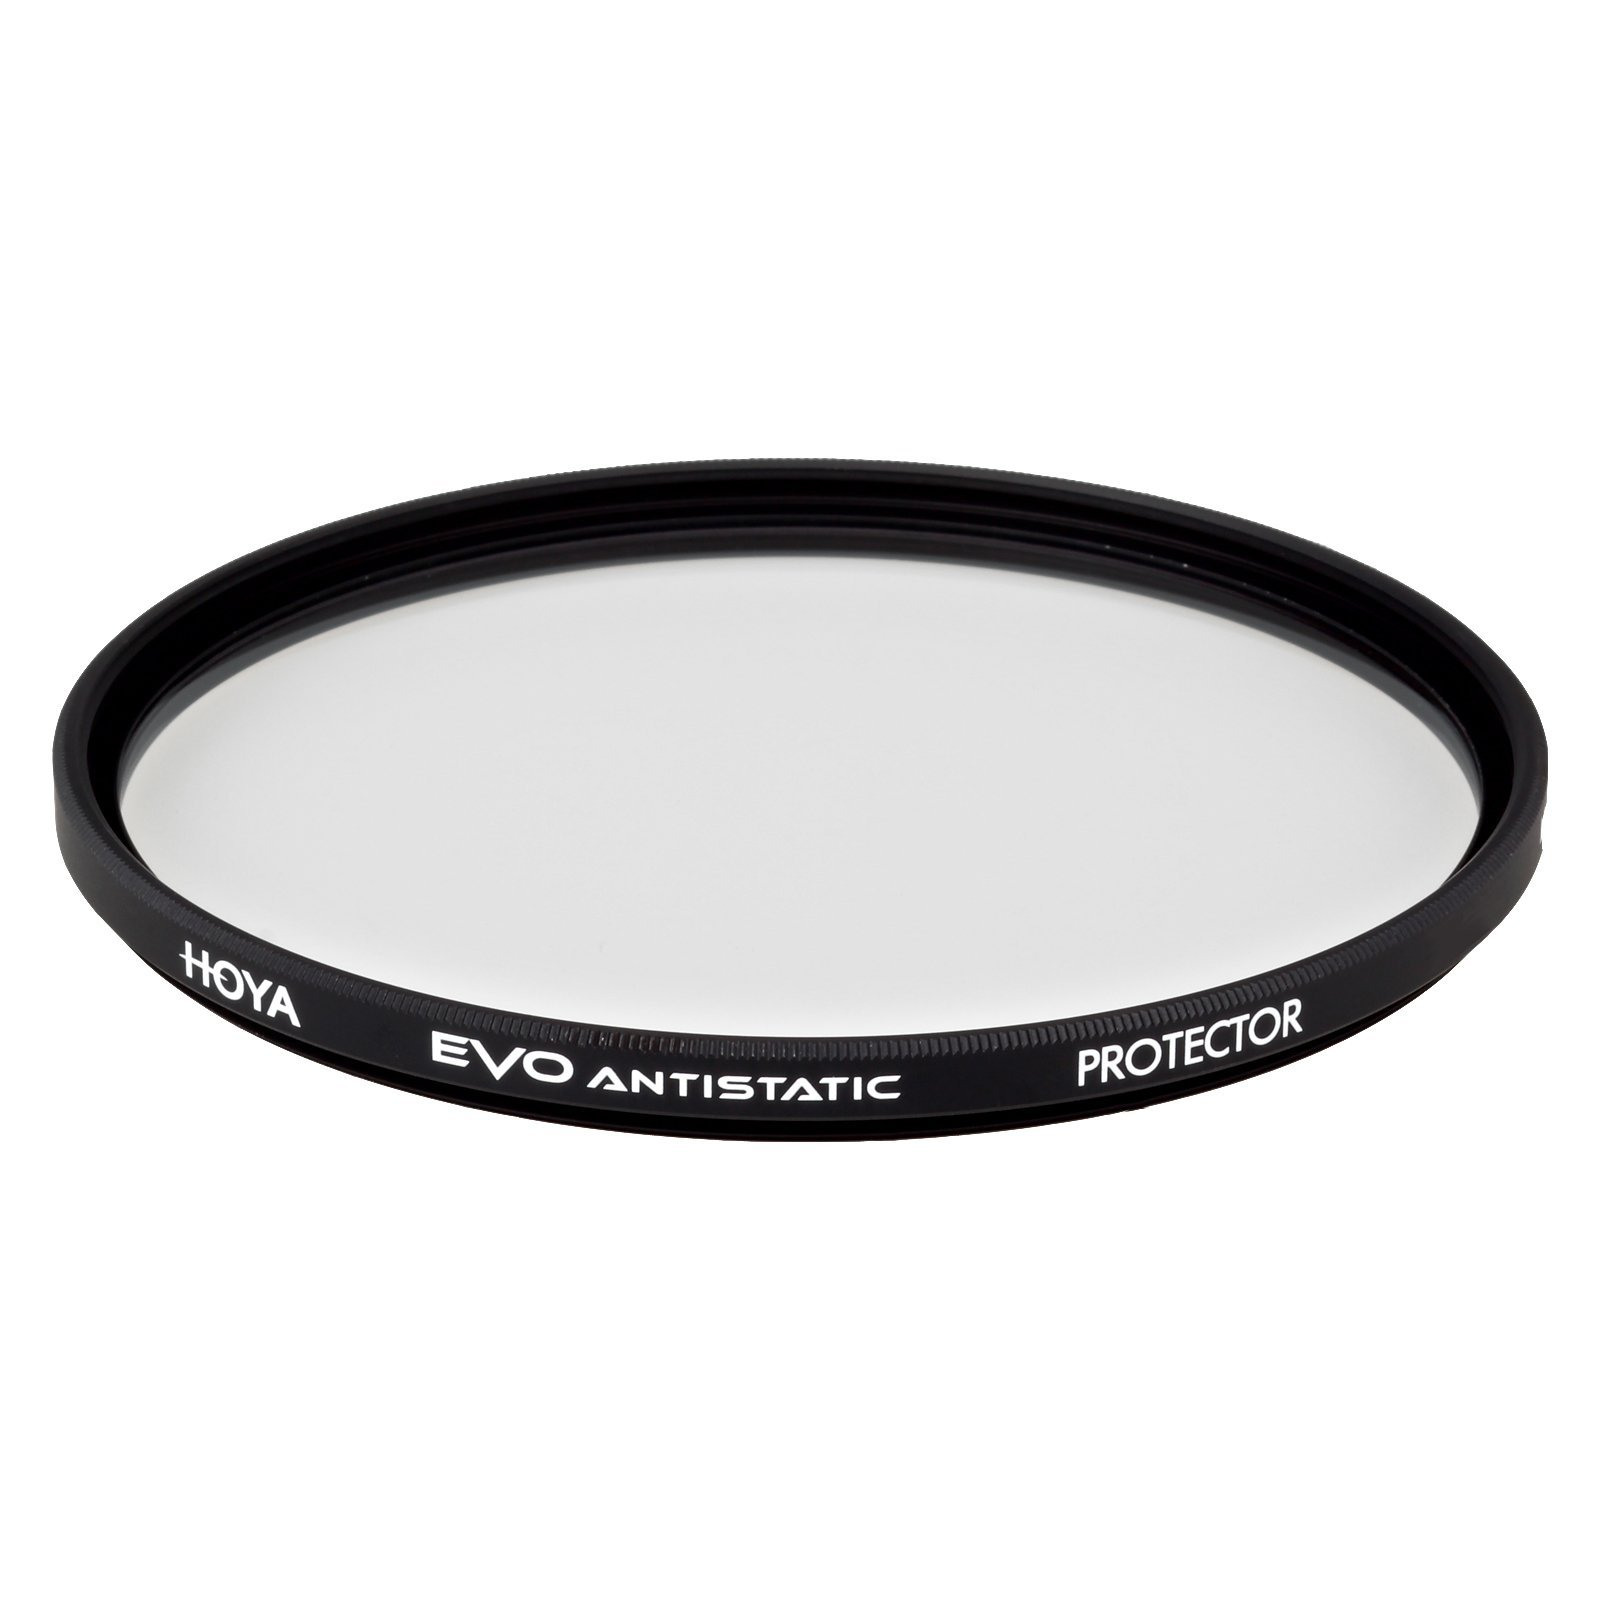 Hoya EvoAntistatic Protector Filter - 37mm - Dust / Stain / Water Repellent, Low-Profile Filter Frame